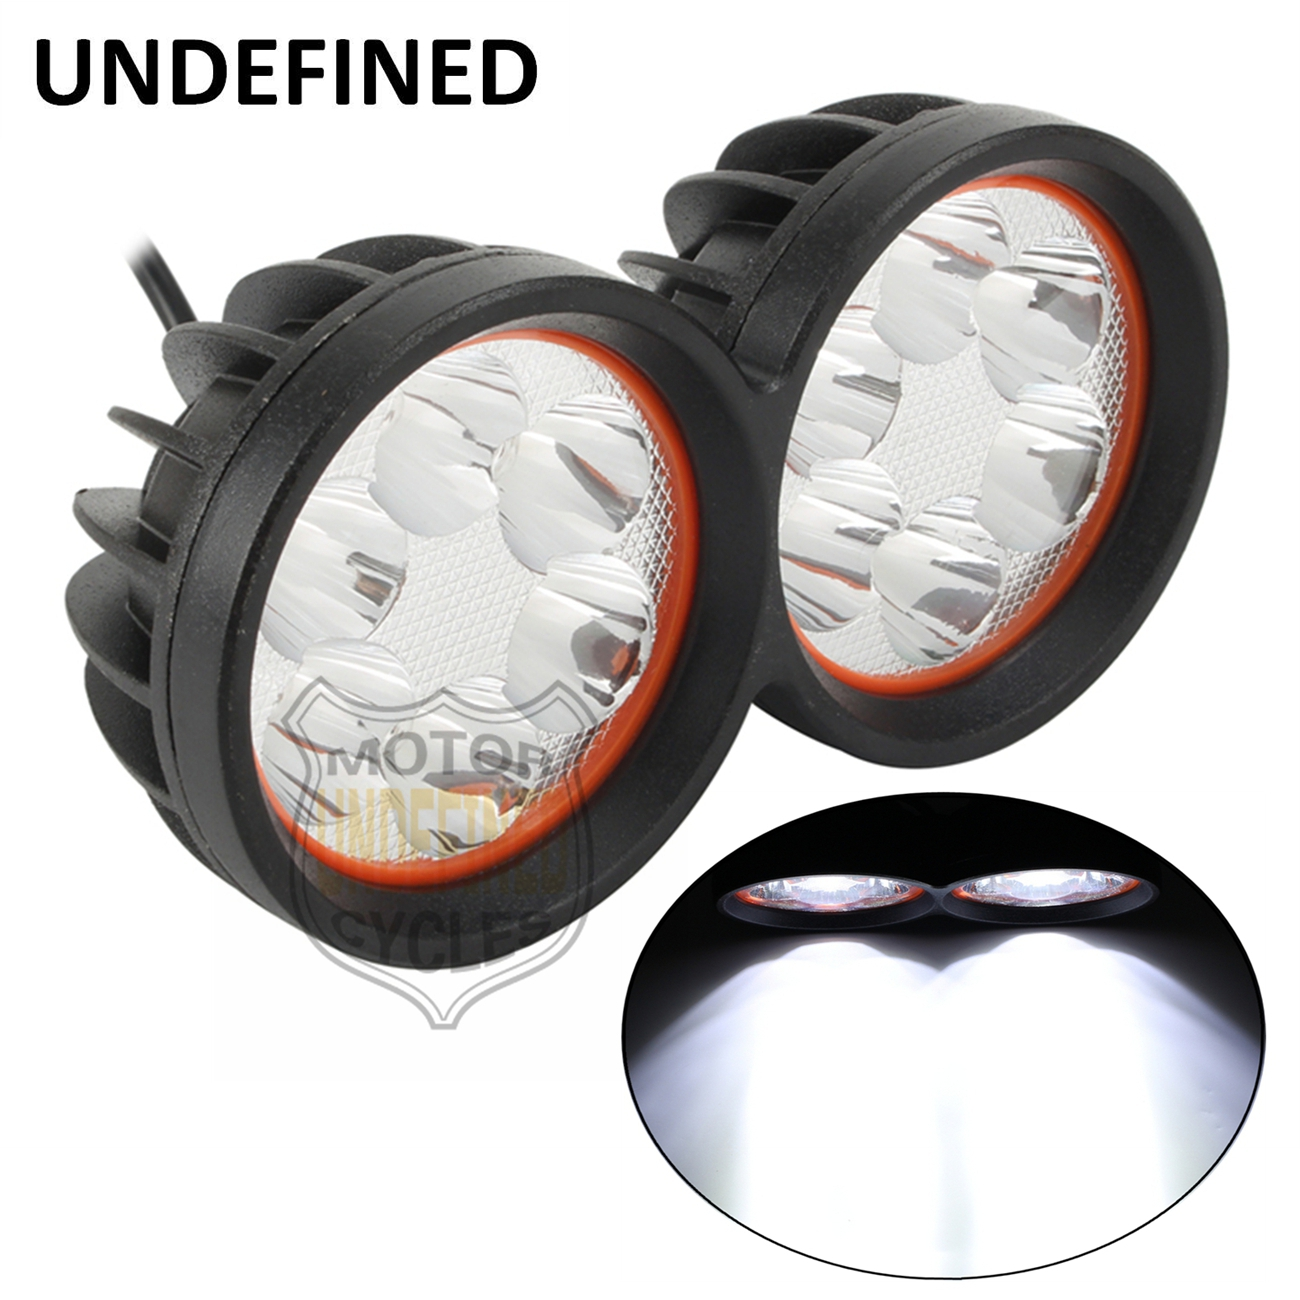 Motorcycle Parts 5000LM 12LED Hi/Lo Beam Double Dual Front Running Headlight Driving Spot Lamp 3 Wire For  Honda UNDEFINED|motorcycle motorcycle - title=